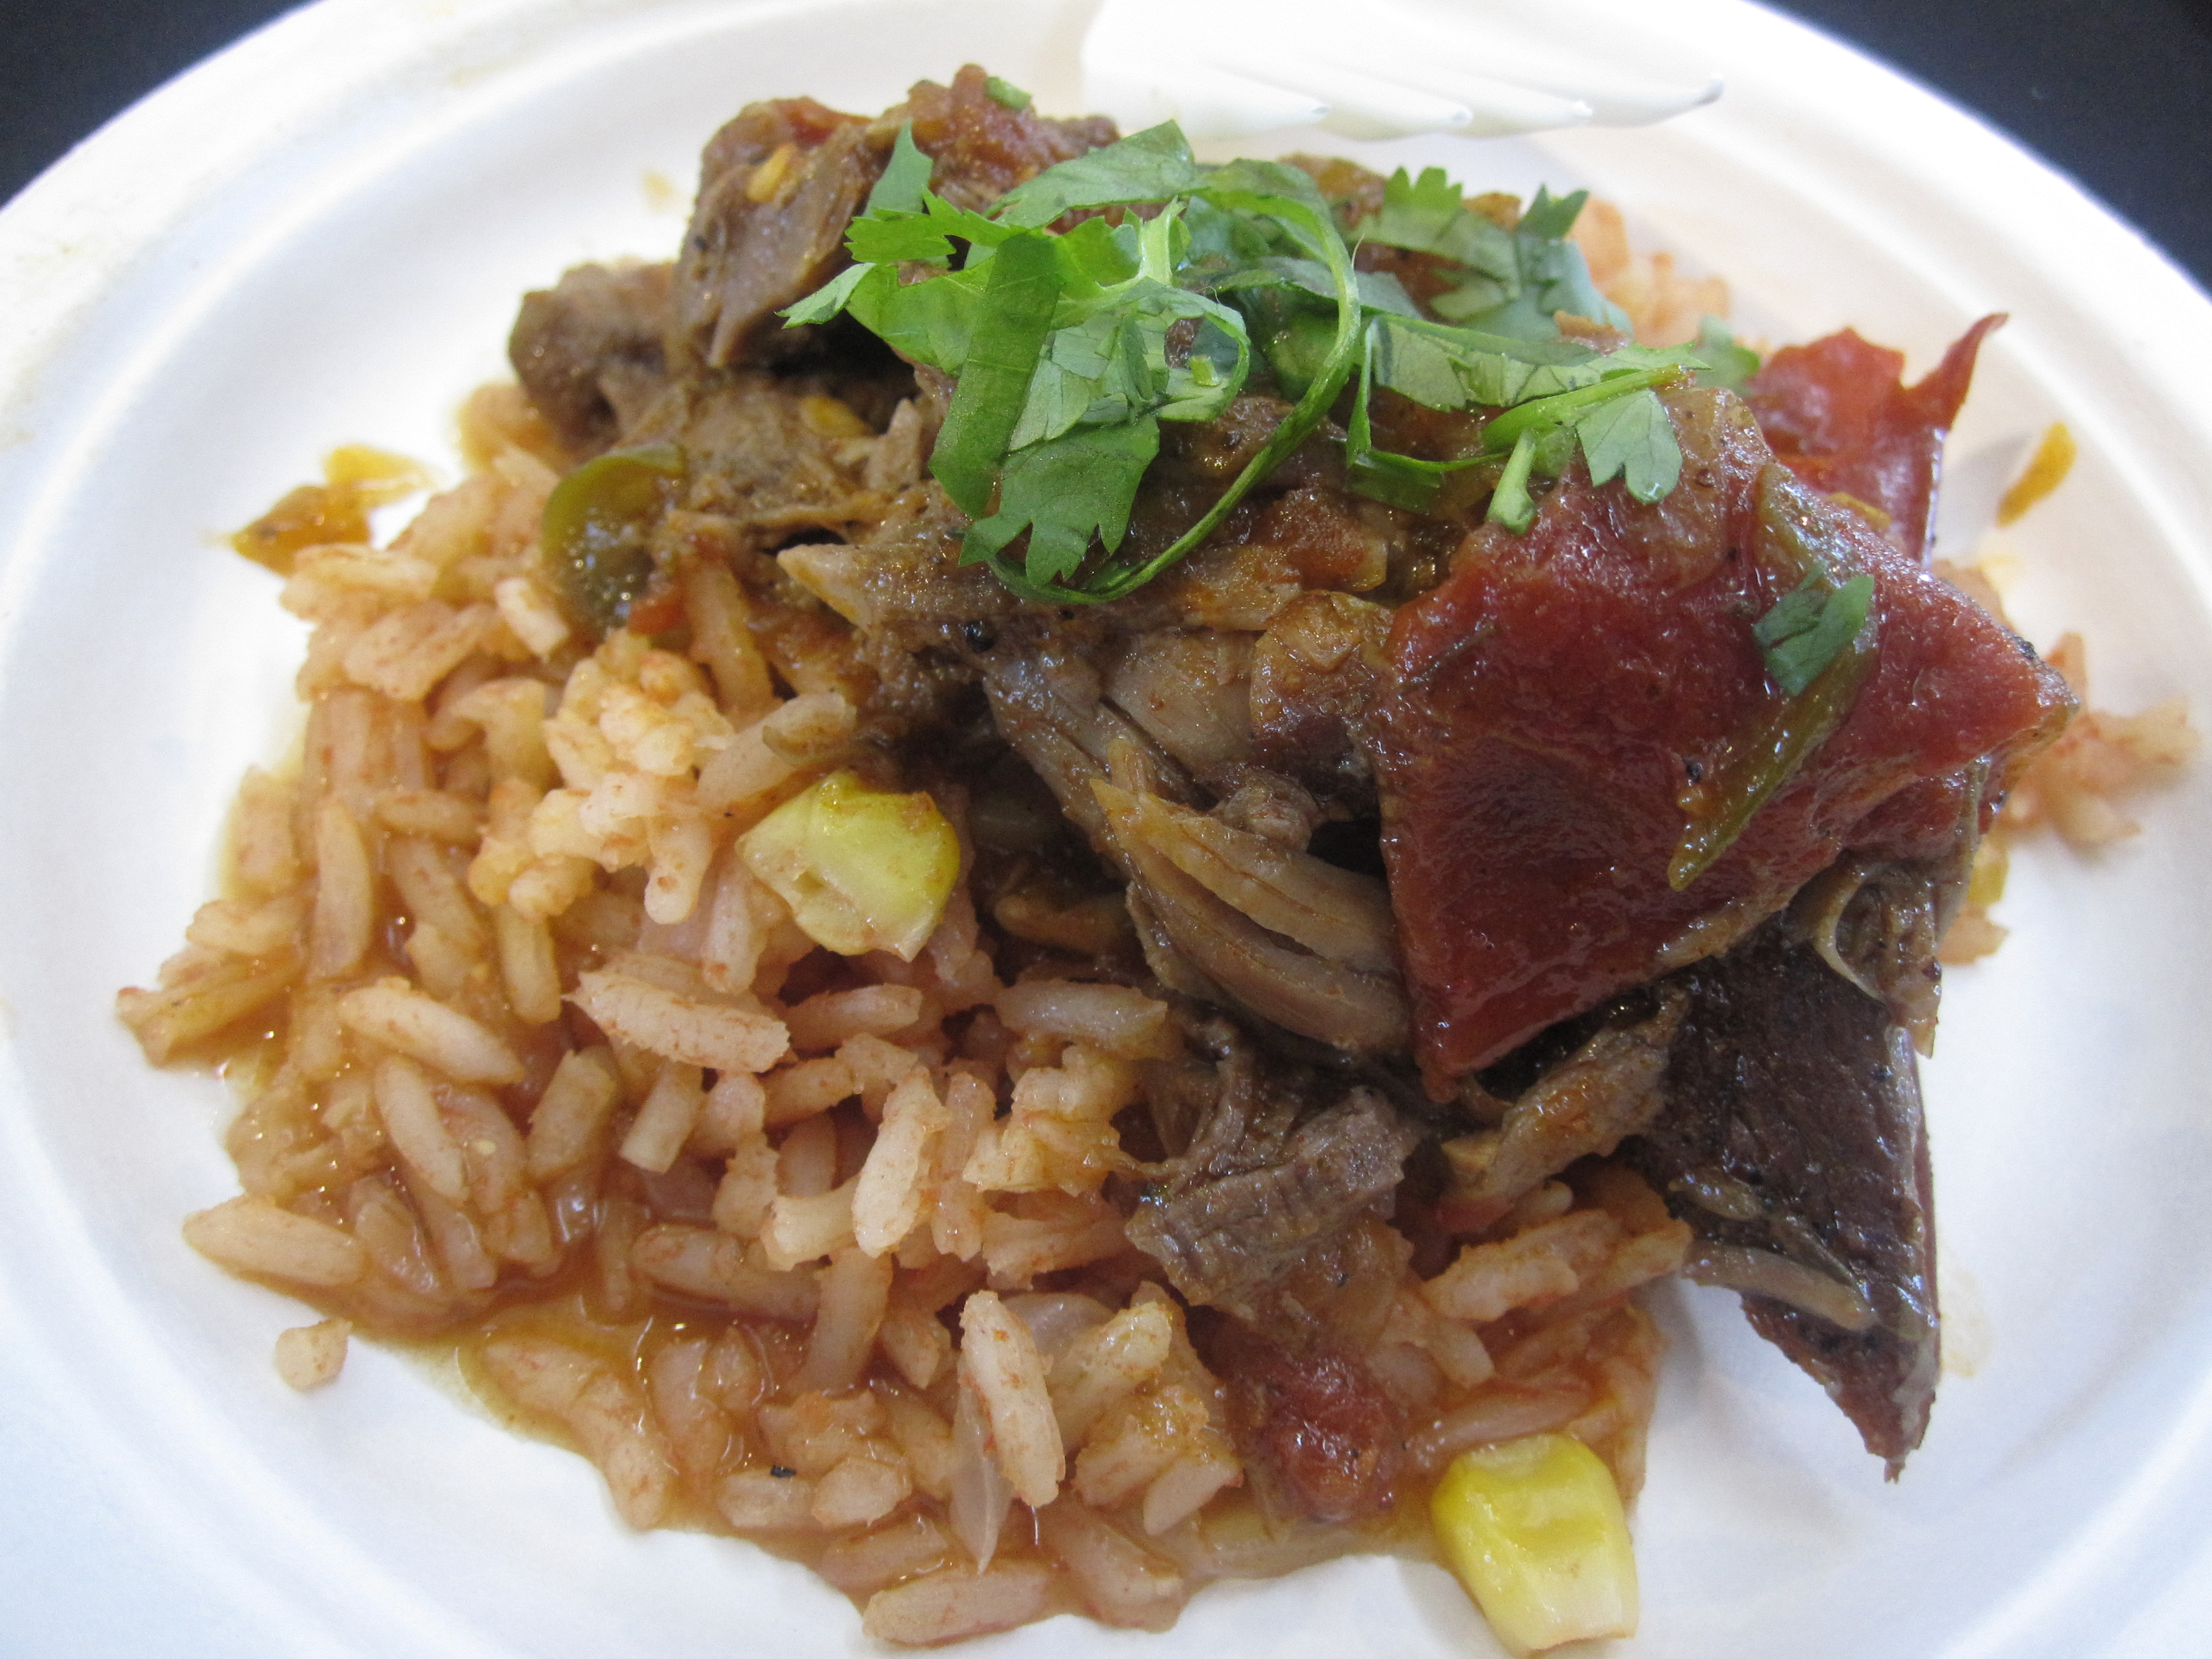 An incredibly spicy lamb shank served on Mexican rice was next. It would have been scrumptious with a soft taco and icy beer.